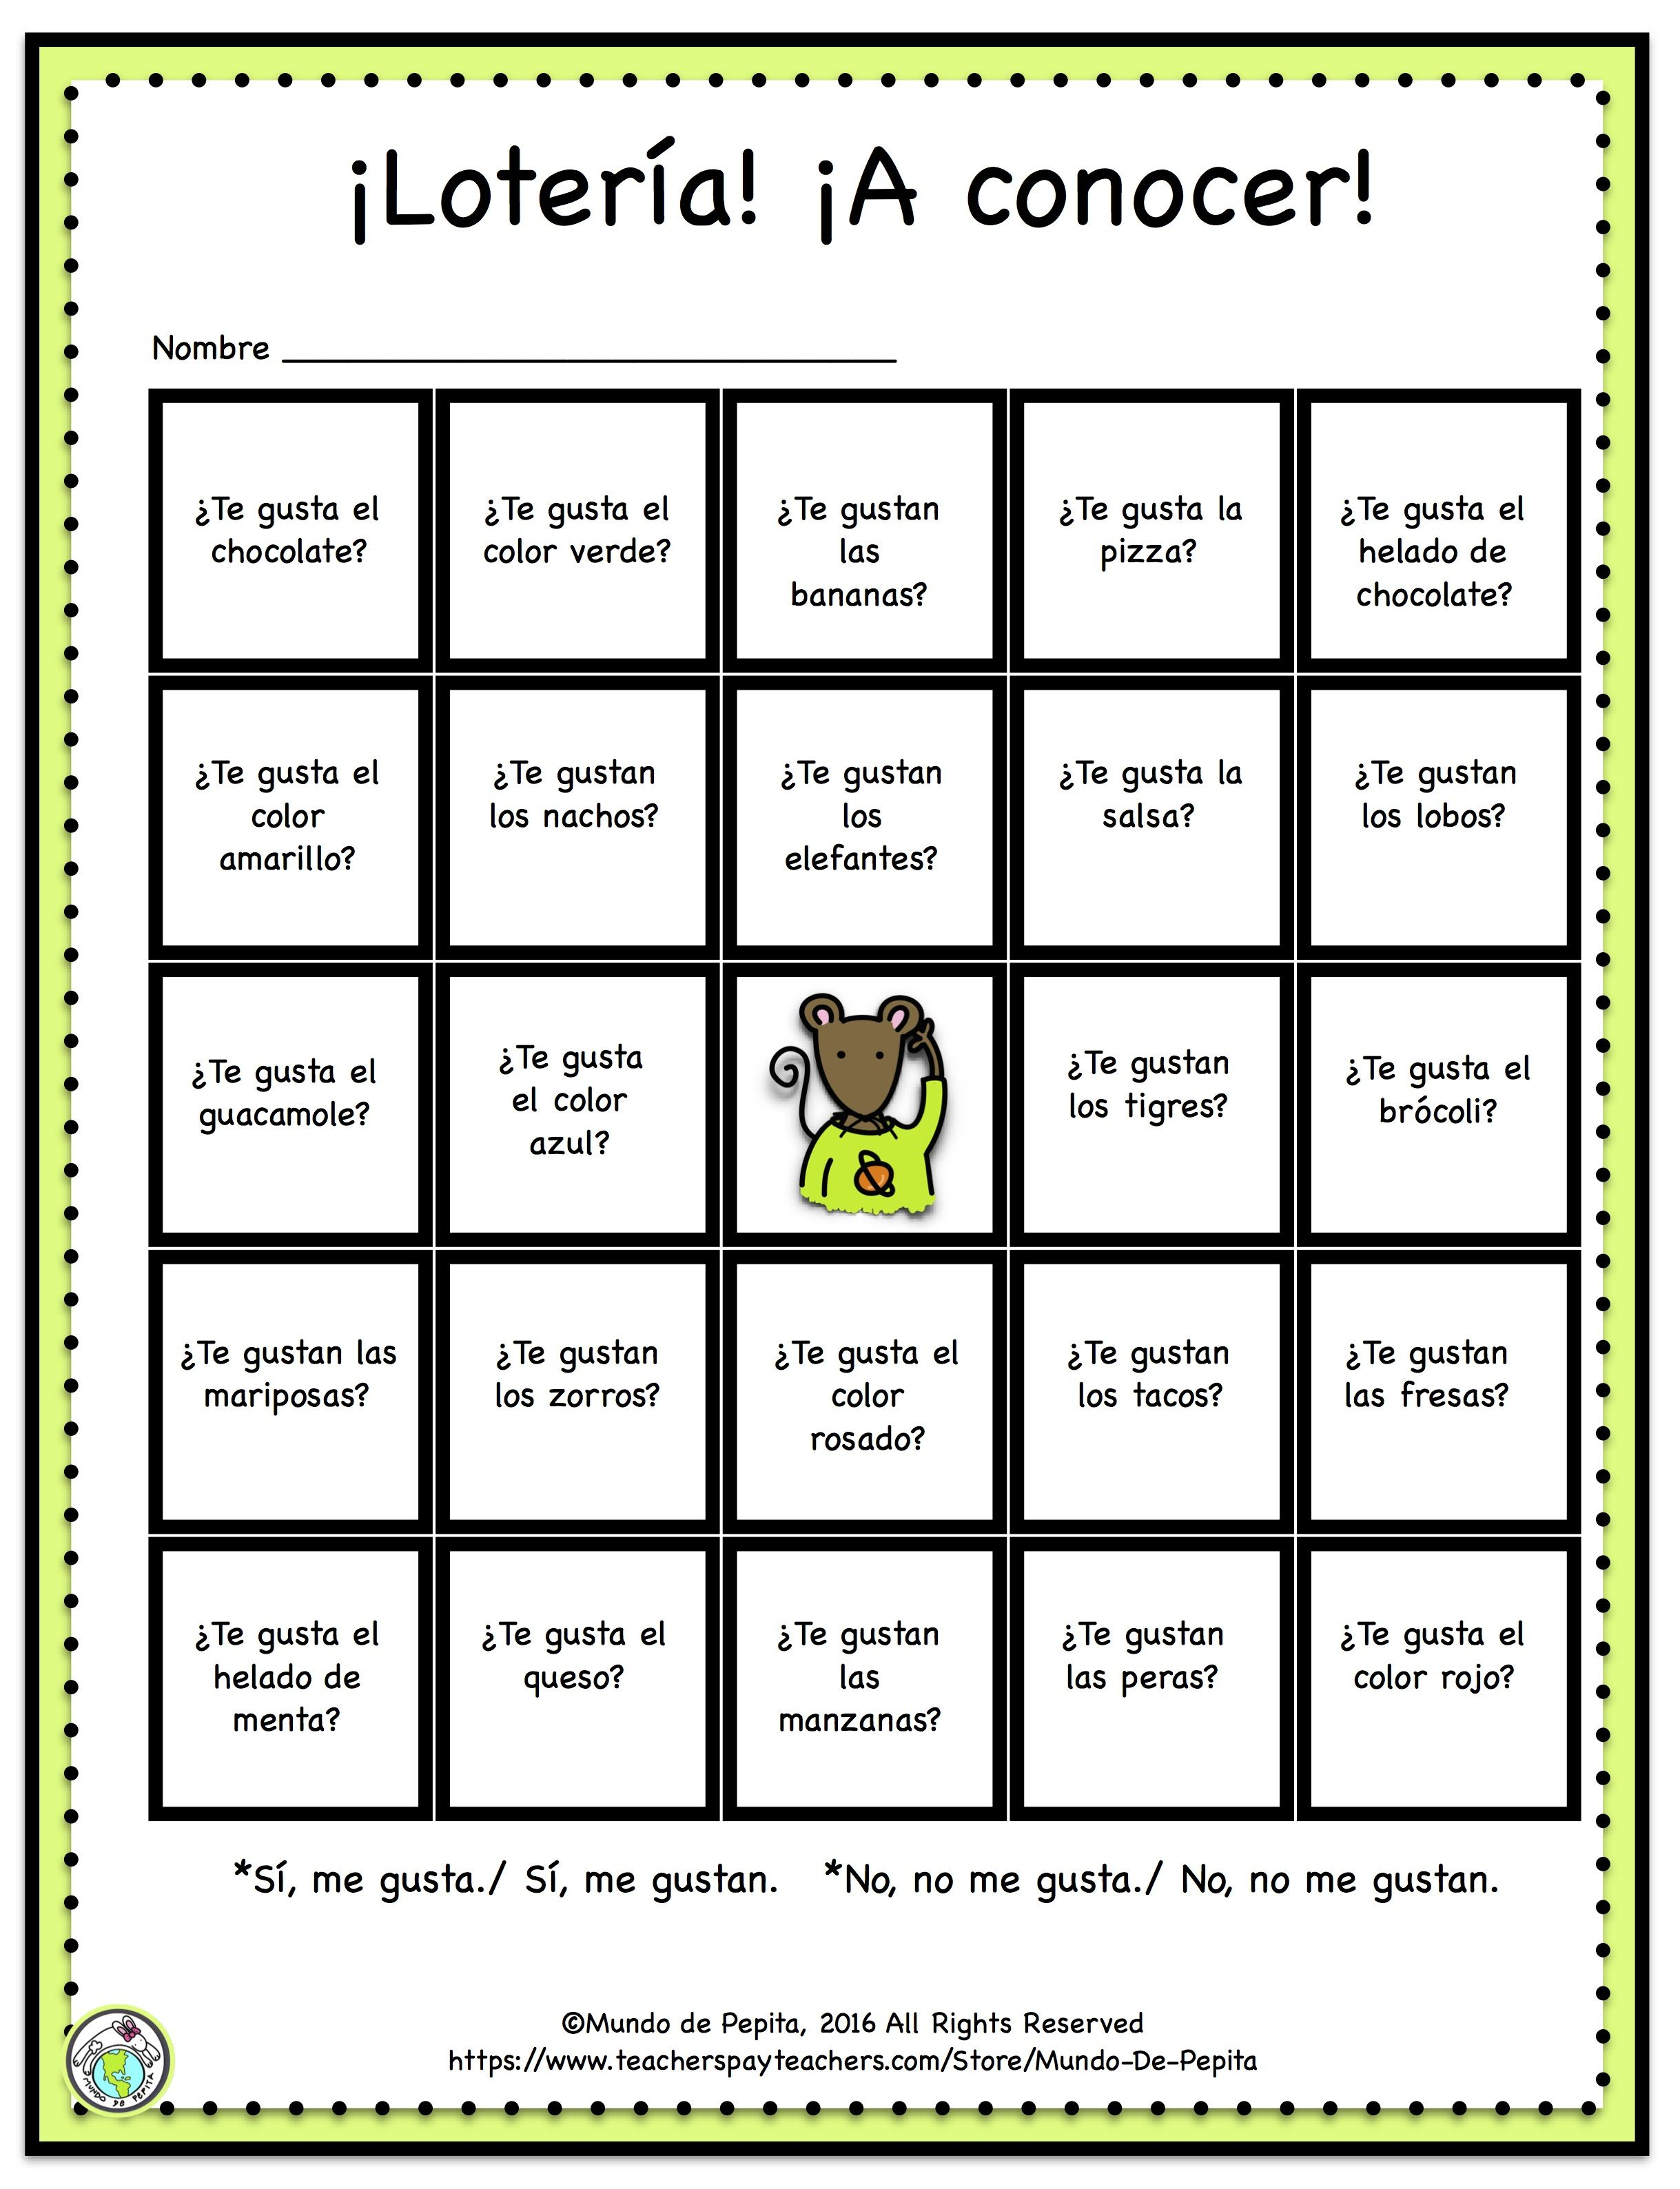 Loteria Printable Game Board Featuring Gustar | Spanish Kids - Free Printable Loteria Game